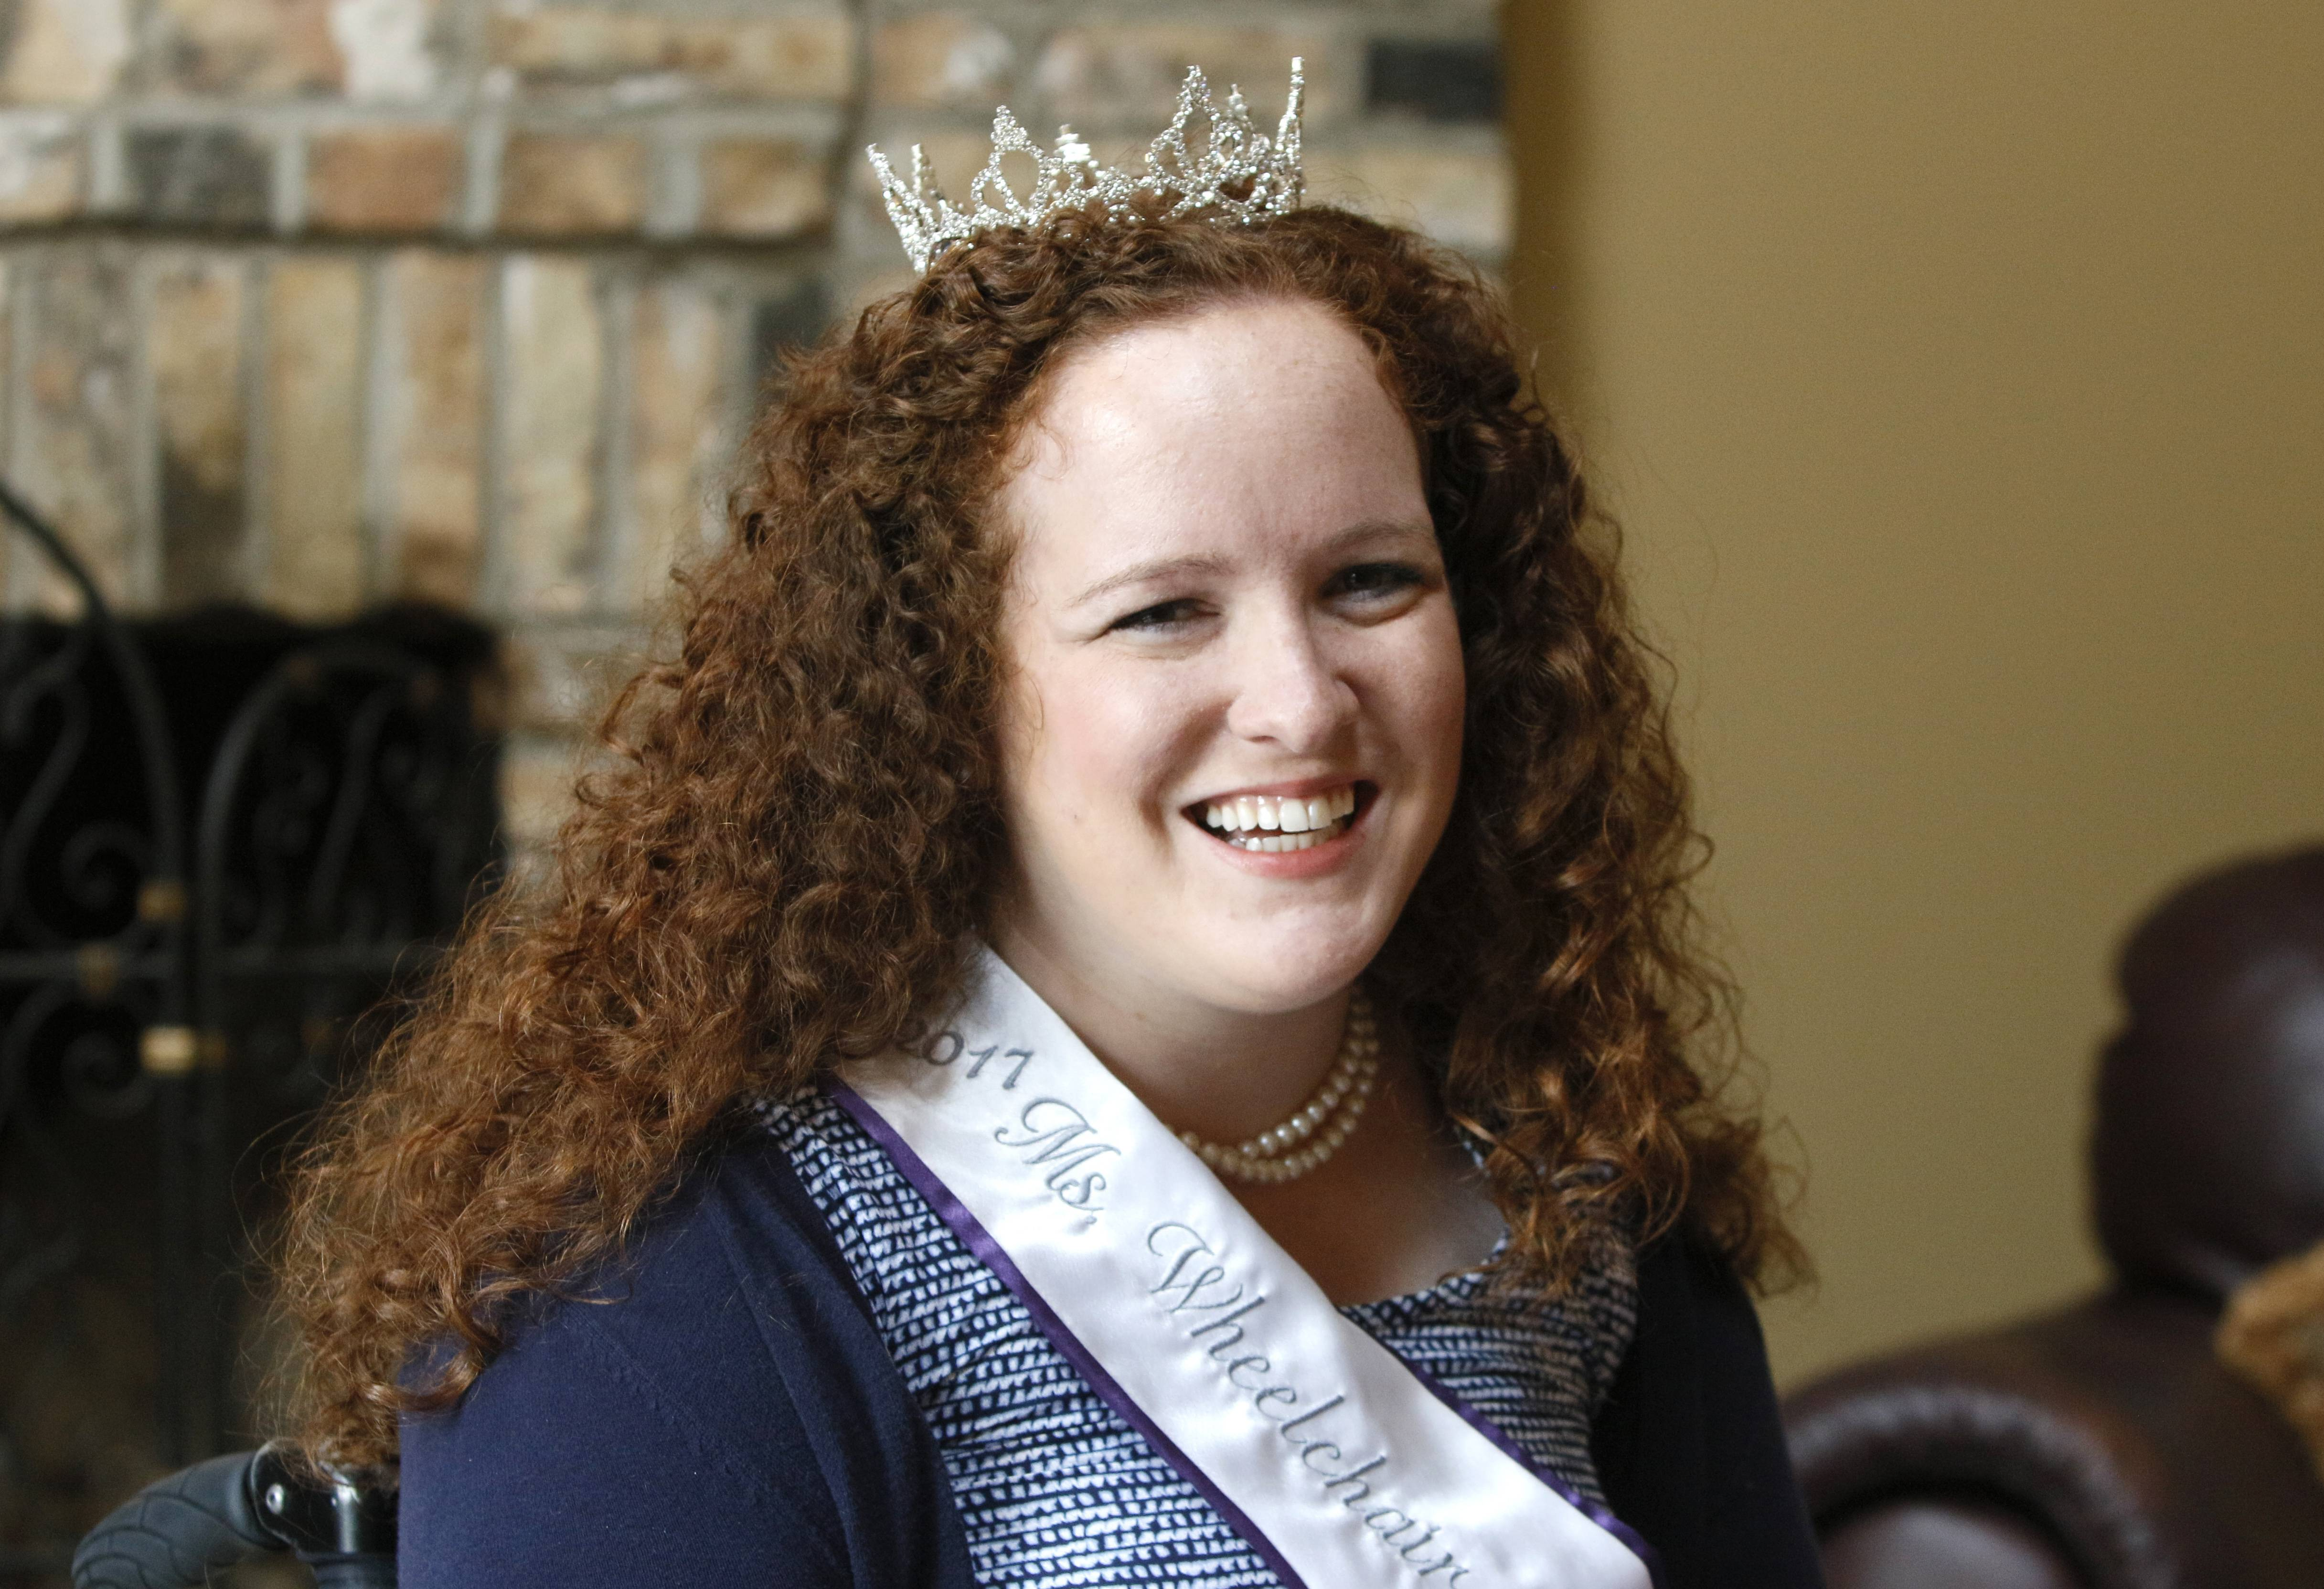 Shannon Webster of Naperville, also known as Ms. Wheelchair Illinois 2017, did not win the national crown at a pageant against 24 other participants this month in Pennsylvania, but she plans to continue advocating for employment for people with disabilities.